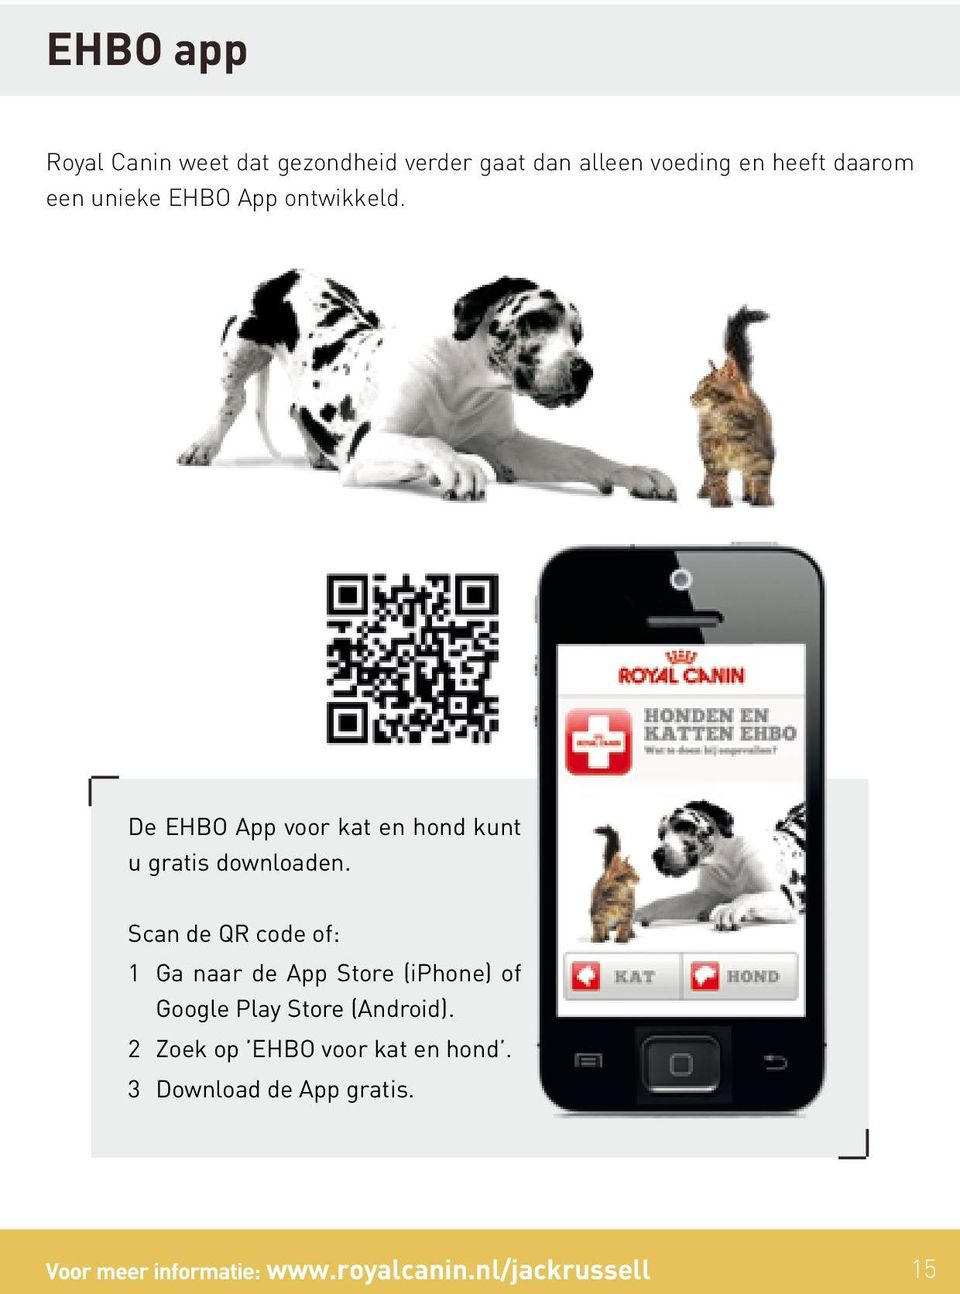 Scan de QR code of: 1 Ga naar de App Store (iphone) of Google Play Store (Android).